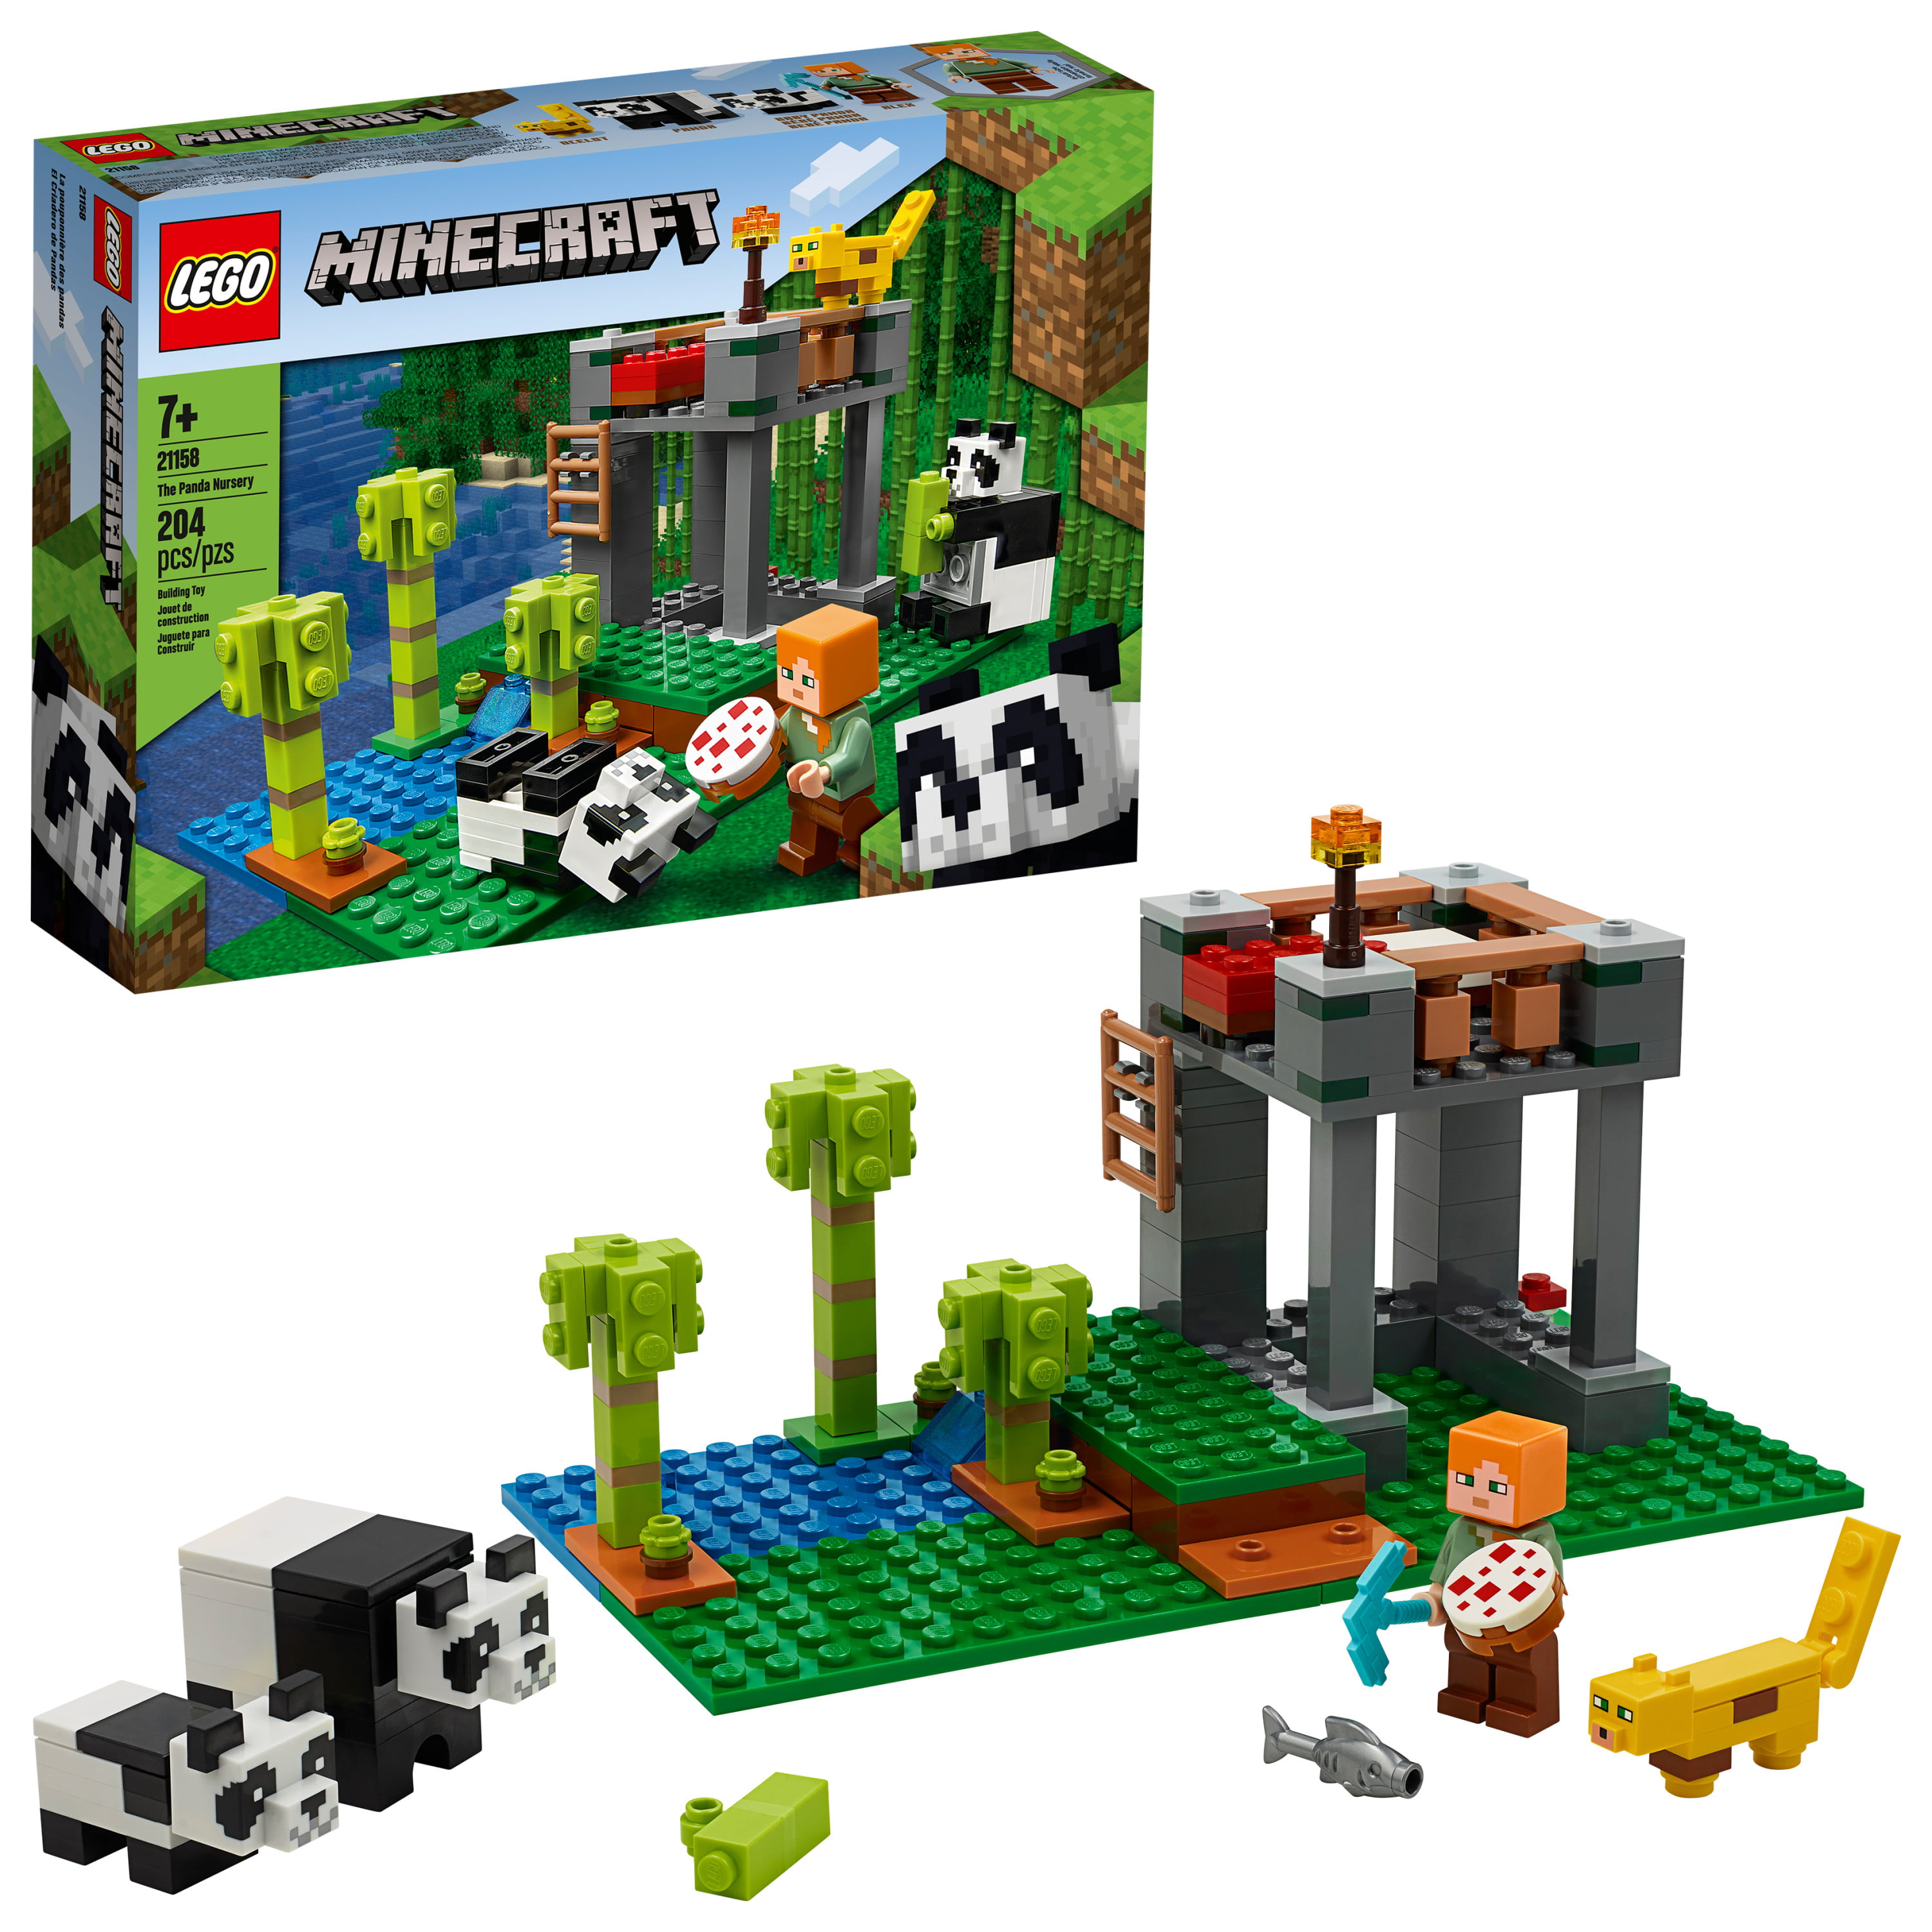 LEGO Minecraft The Panda Nursery 21158 Construction Toy for Kids, Great Creative Gift for Fans of Minecraft (204 Pieces)